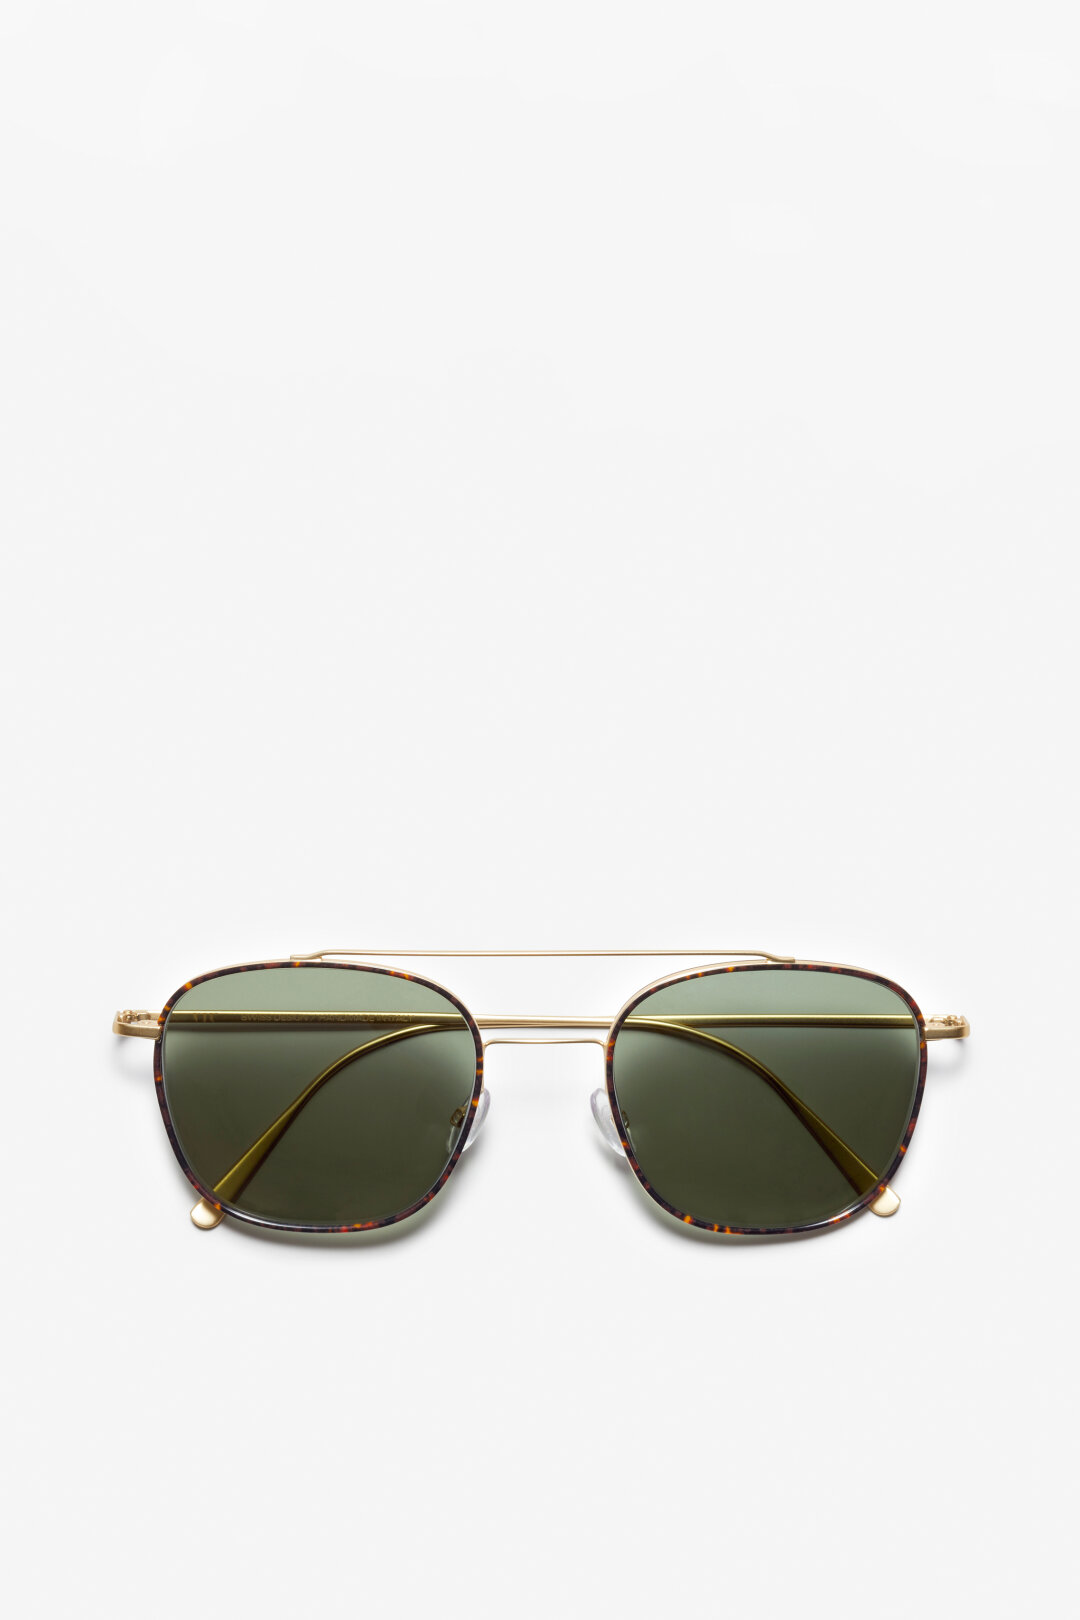 Closed x VIU Unisex Sunglasses THE IDEALISTE